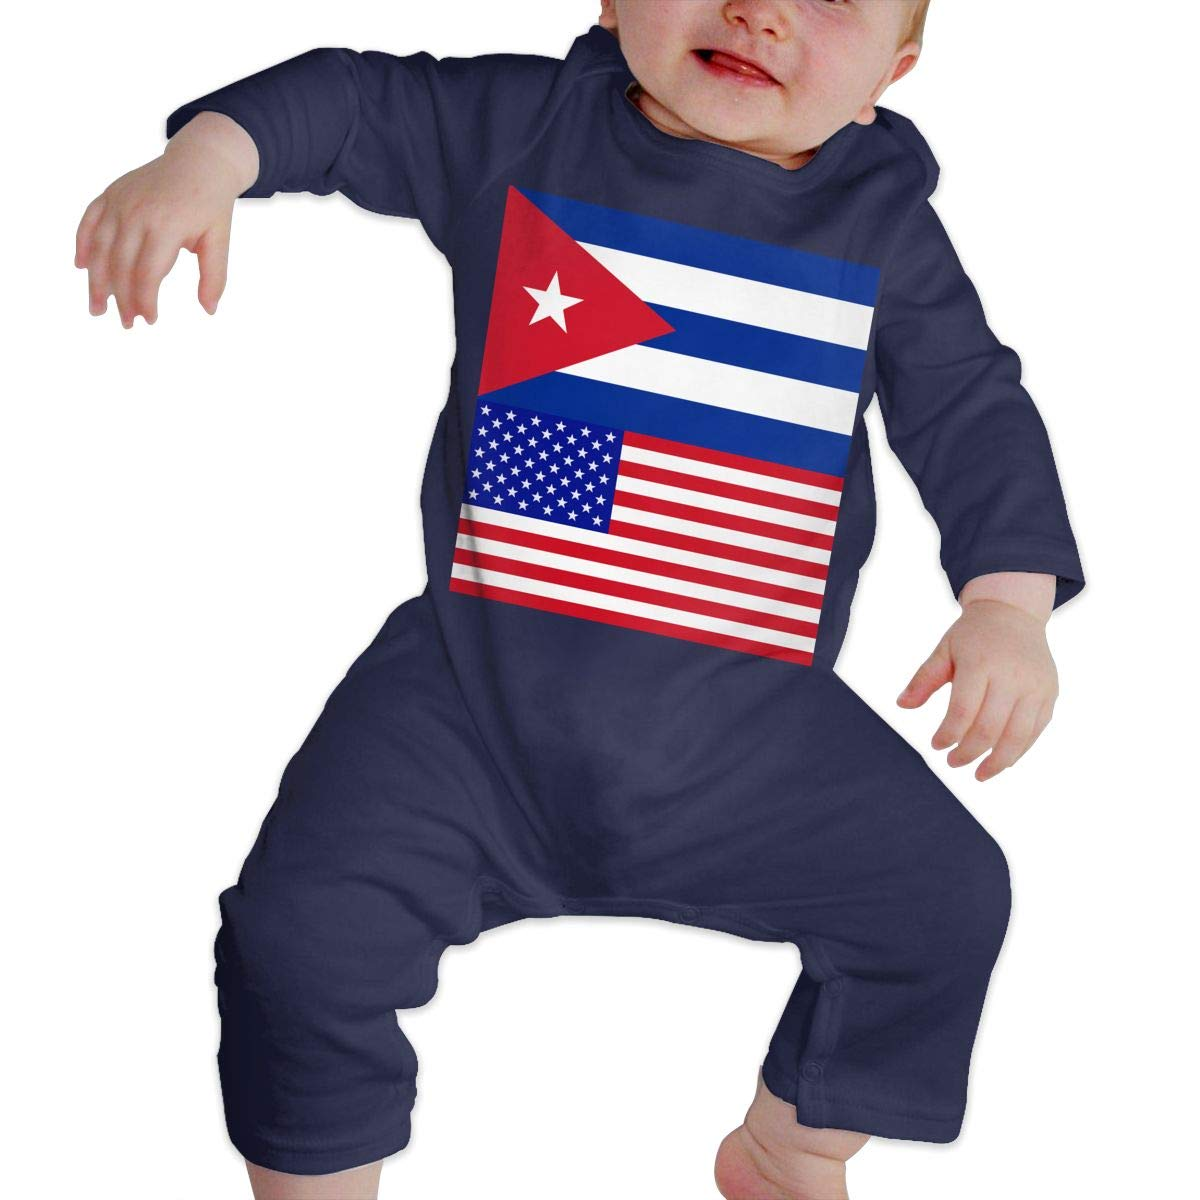 Mri-le1 Toddler Baby Boy Girl Organic Coverall Cuba-American Proud Toddler Jumpsuit